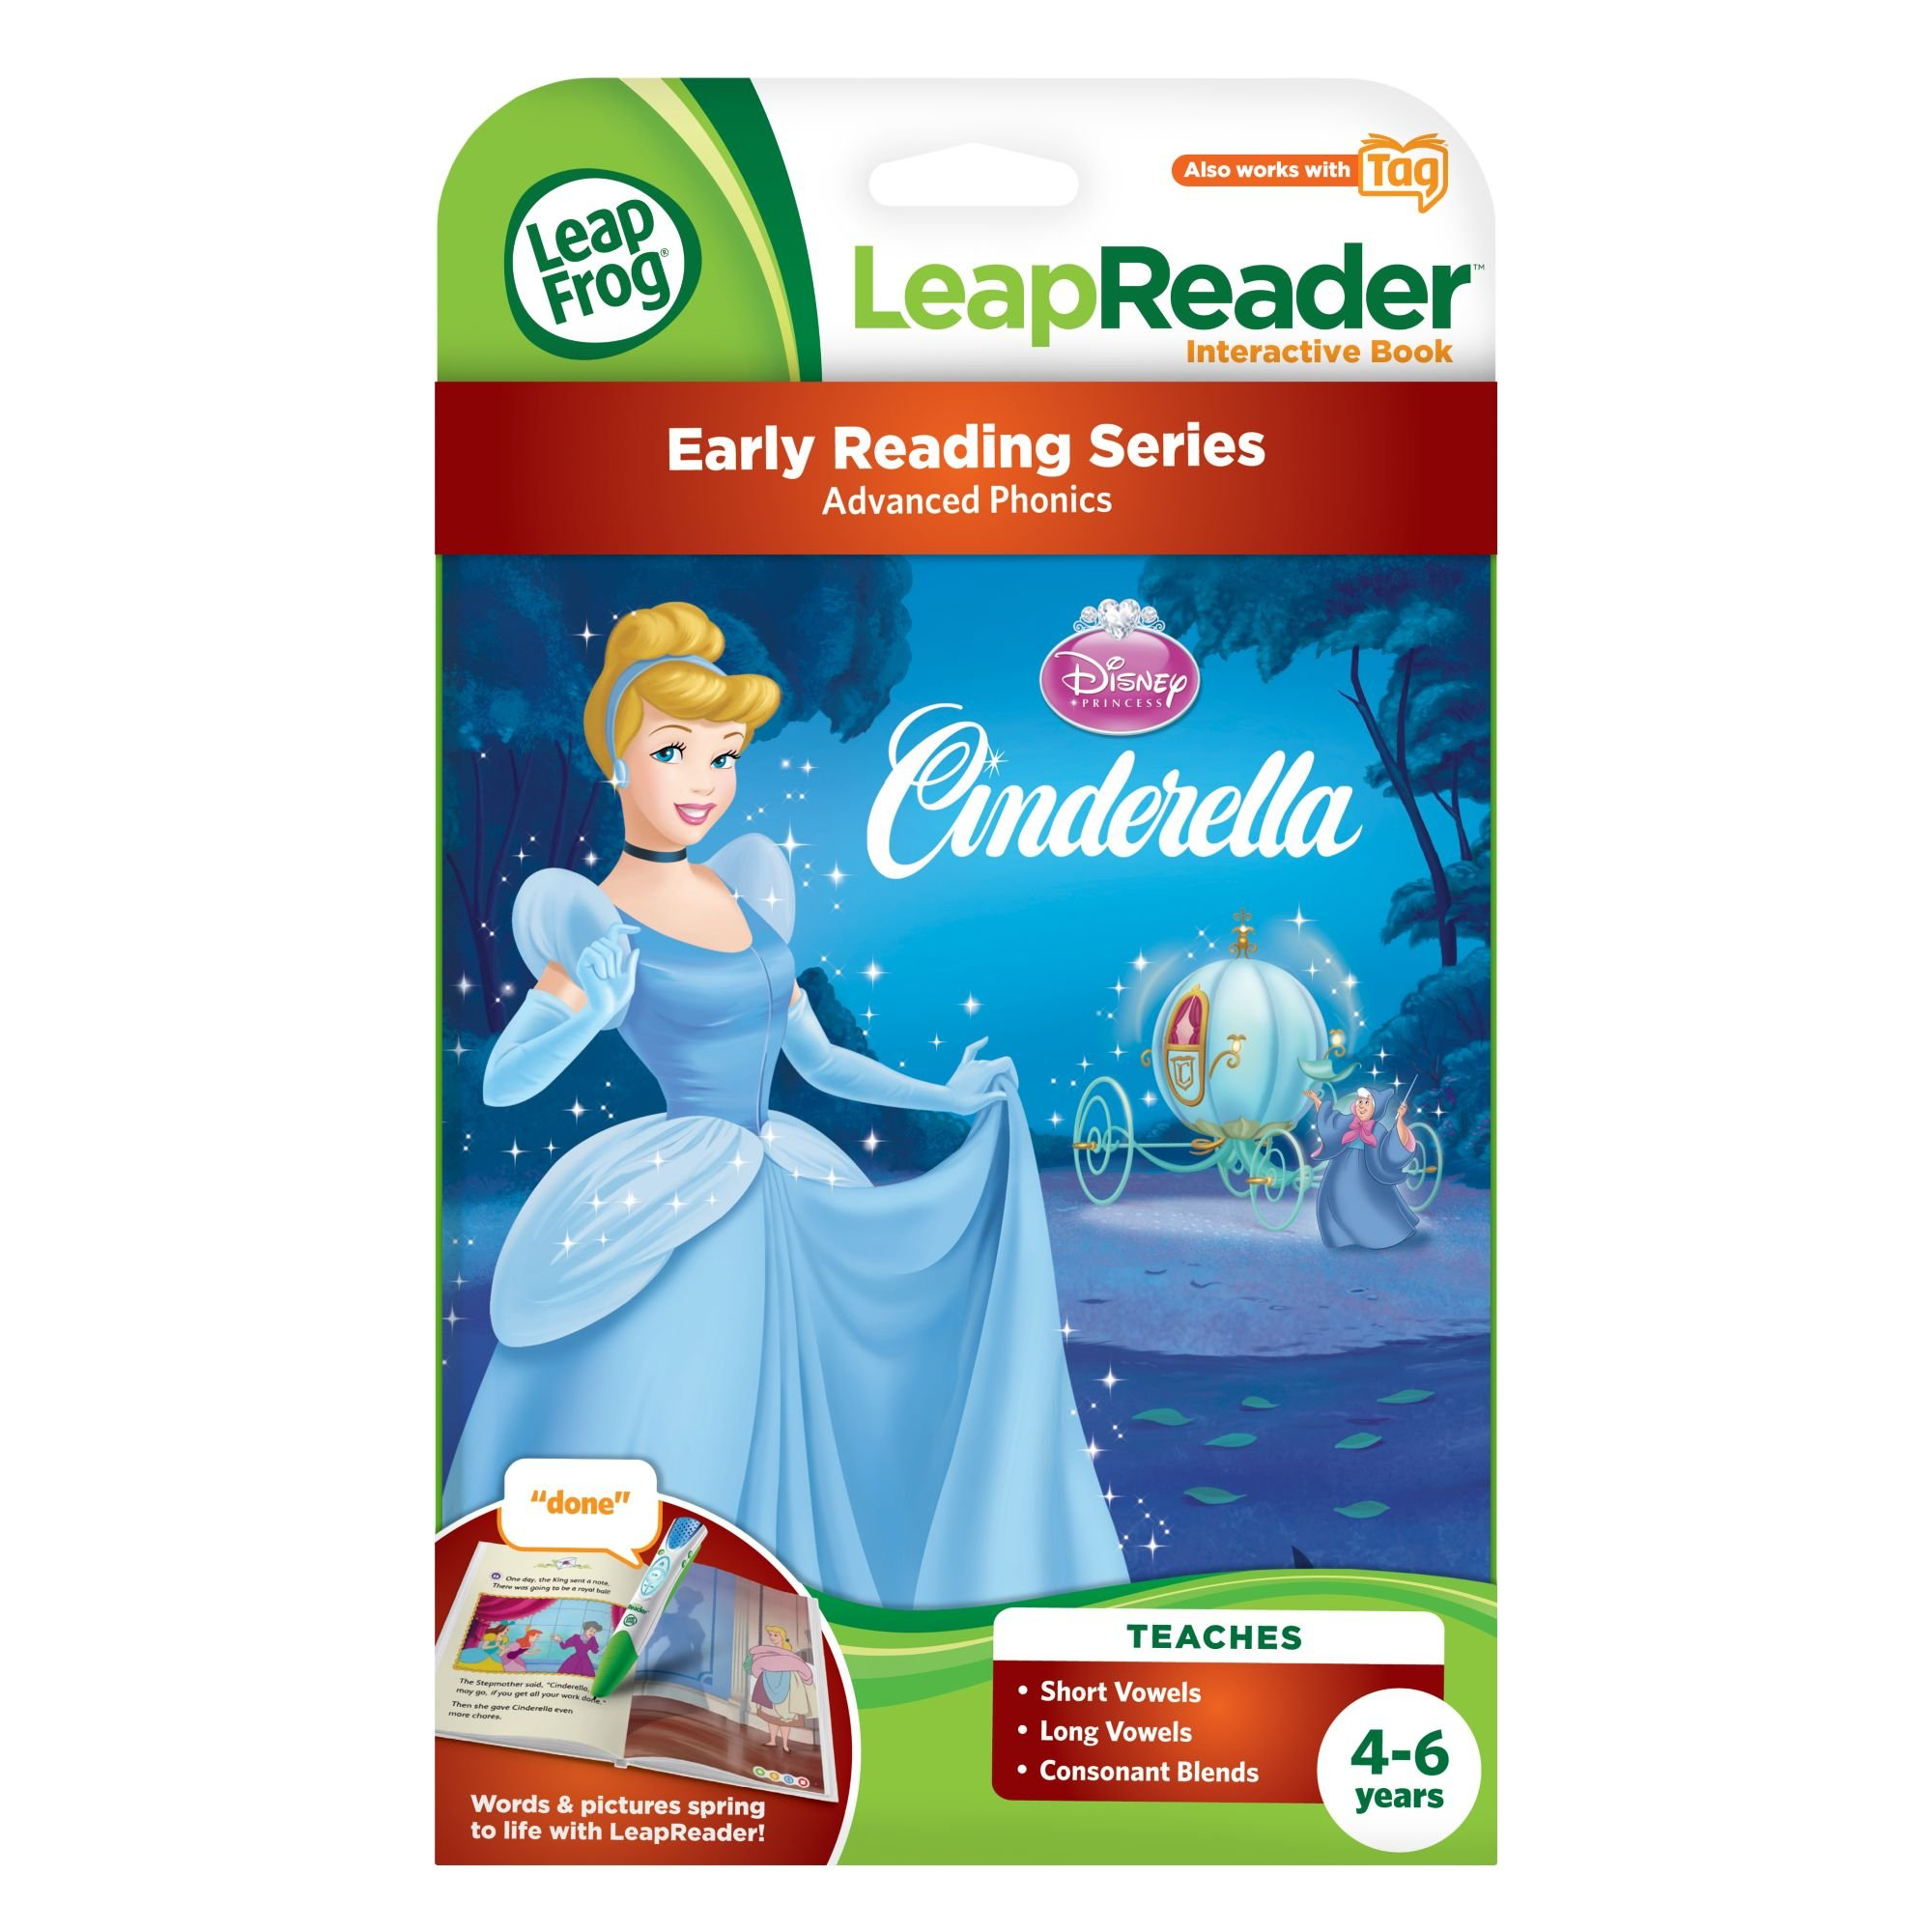 LeapFrog LeapReader Book: Disney Cinderella: The Heart That Believes (works with Tag) by LeapFrog (Image #2)